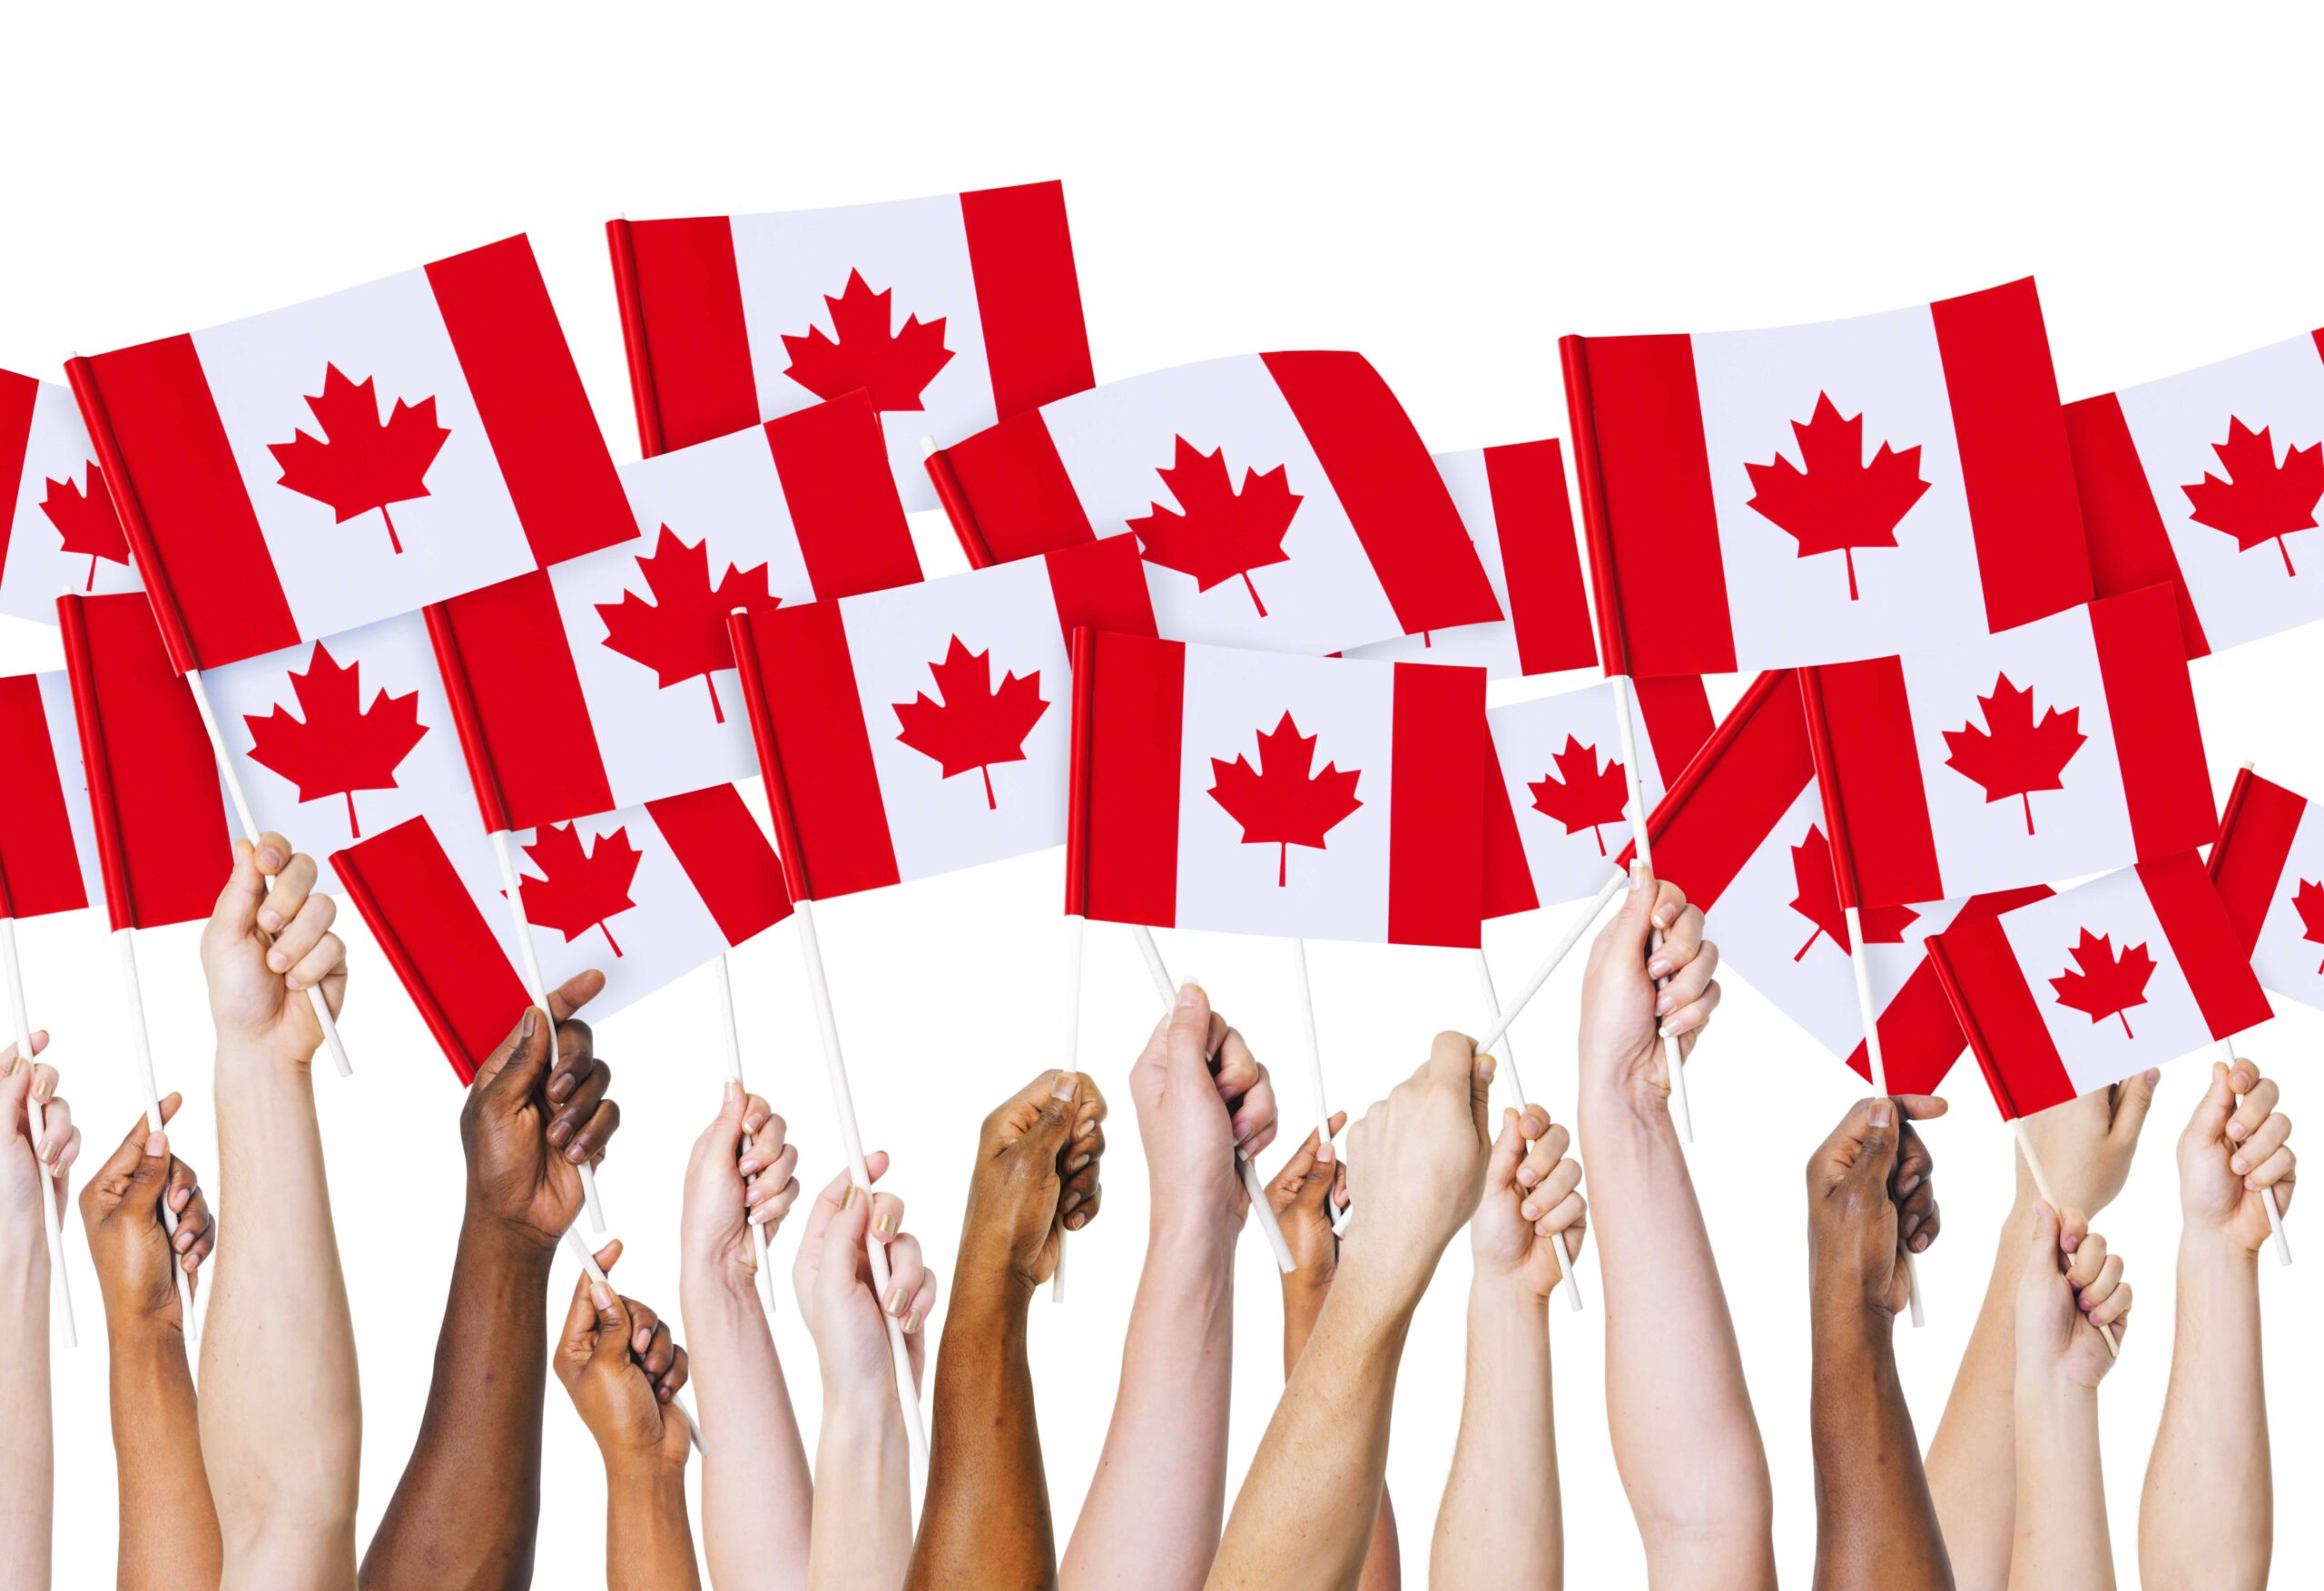 Multiple people holding up Canadian flags